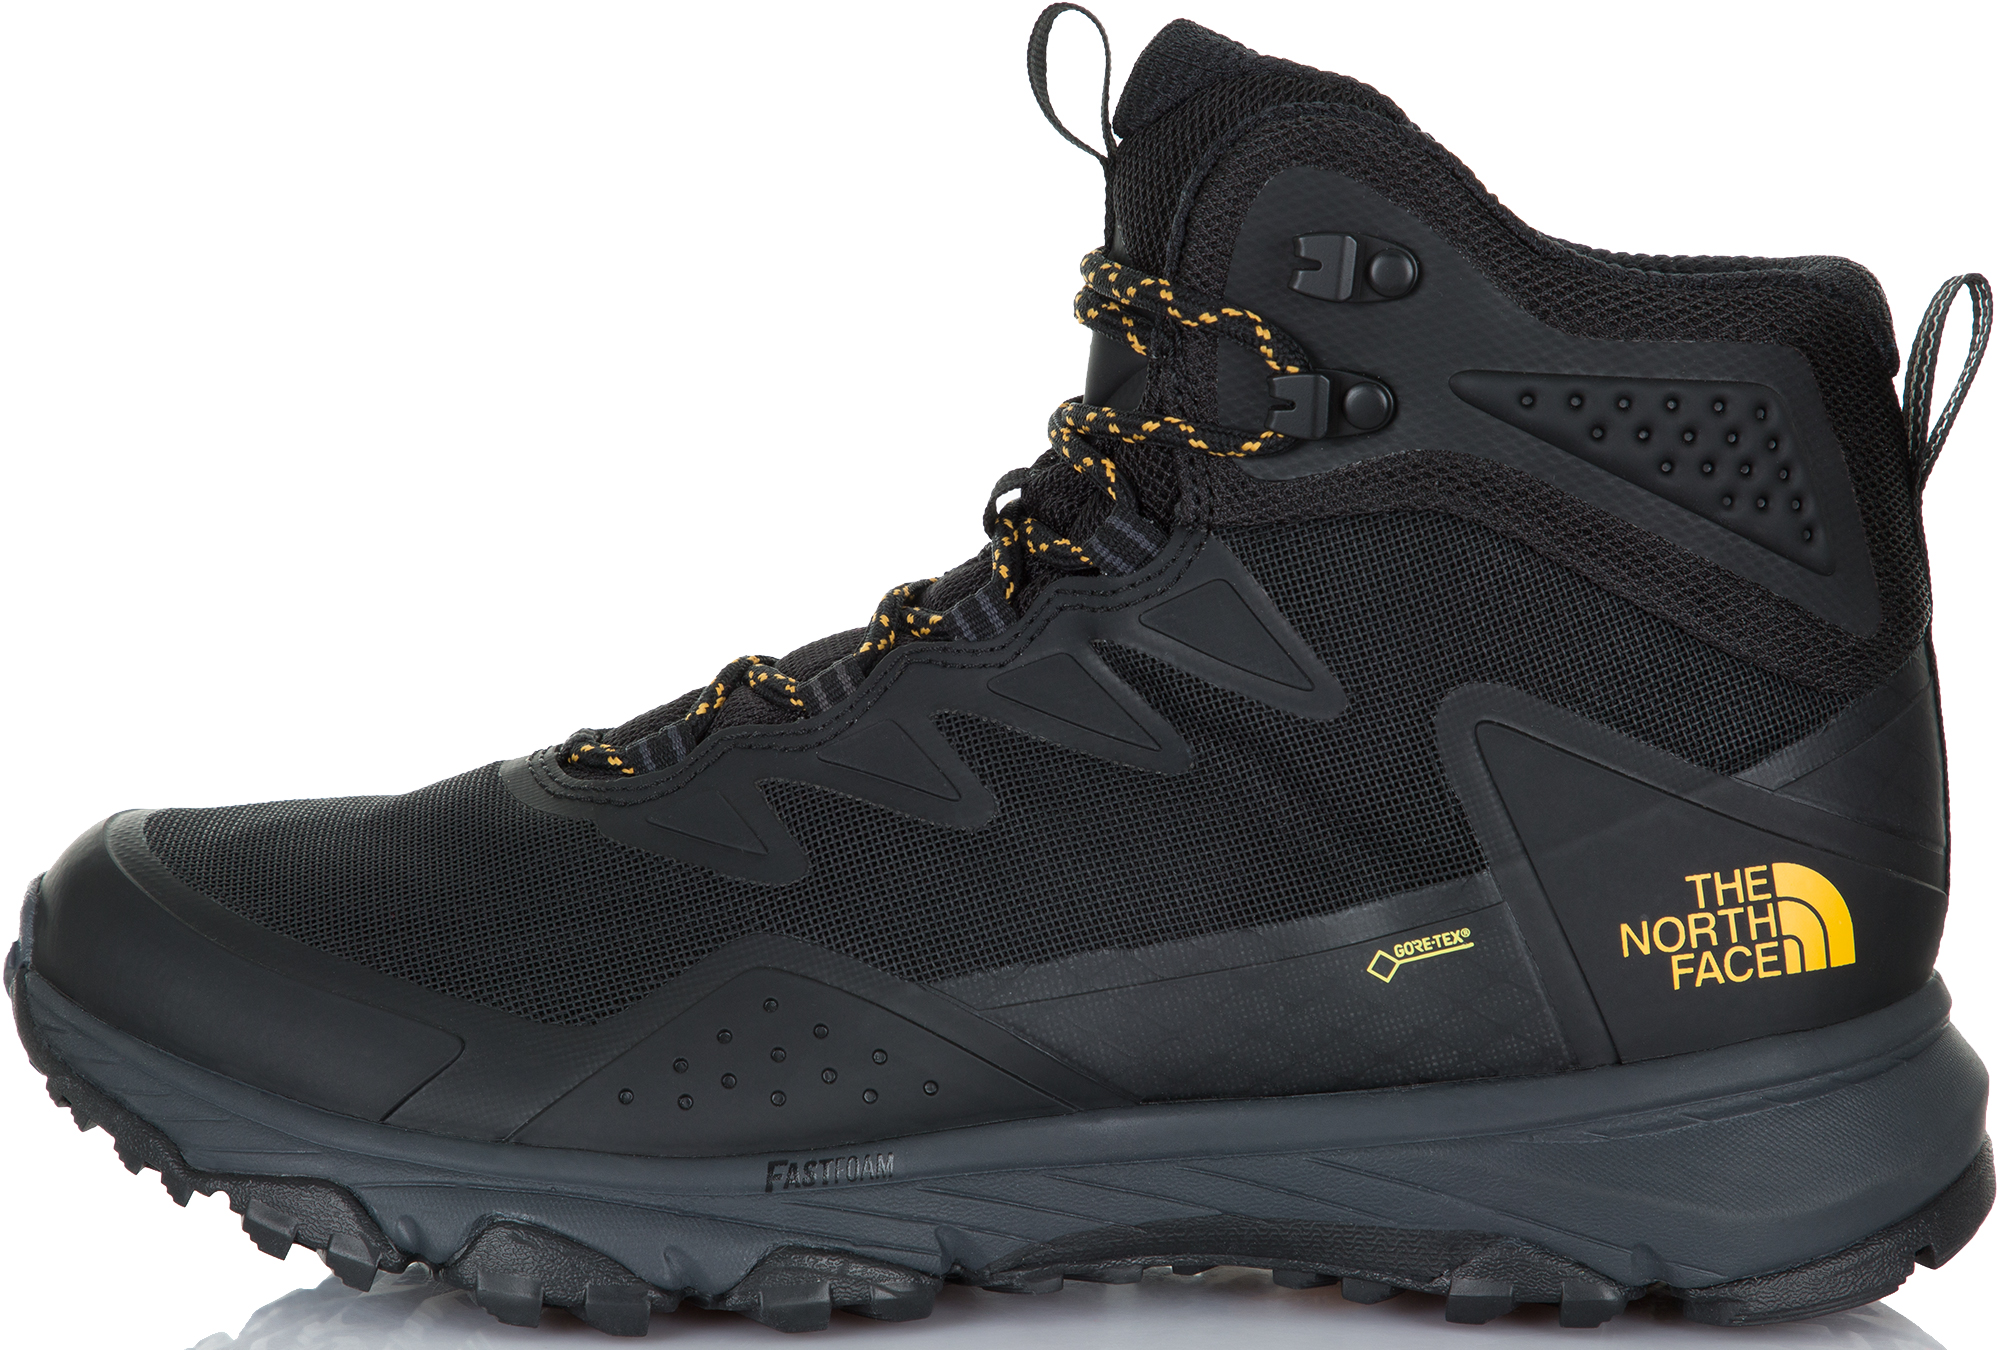 The North Face Ботинки мужские The North Face Ultra Fastpack III, размер 45 цена